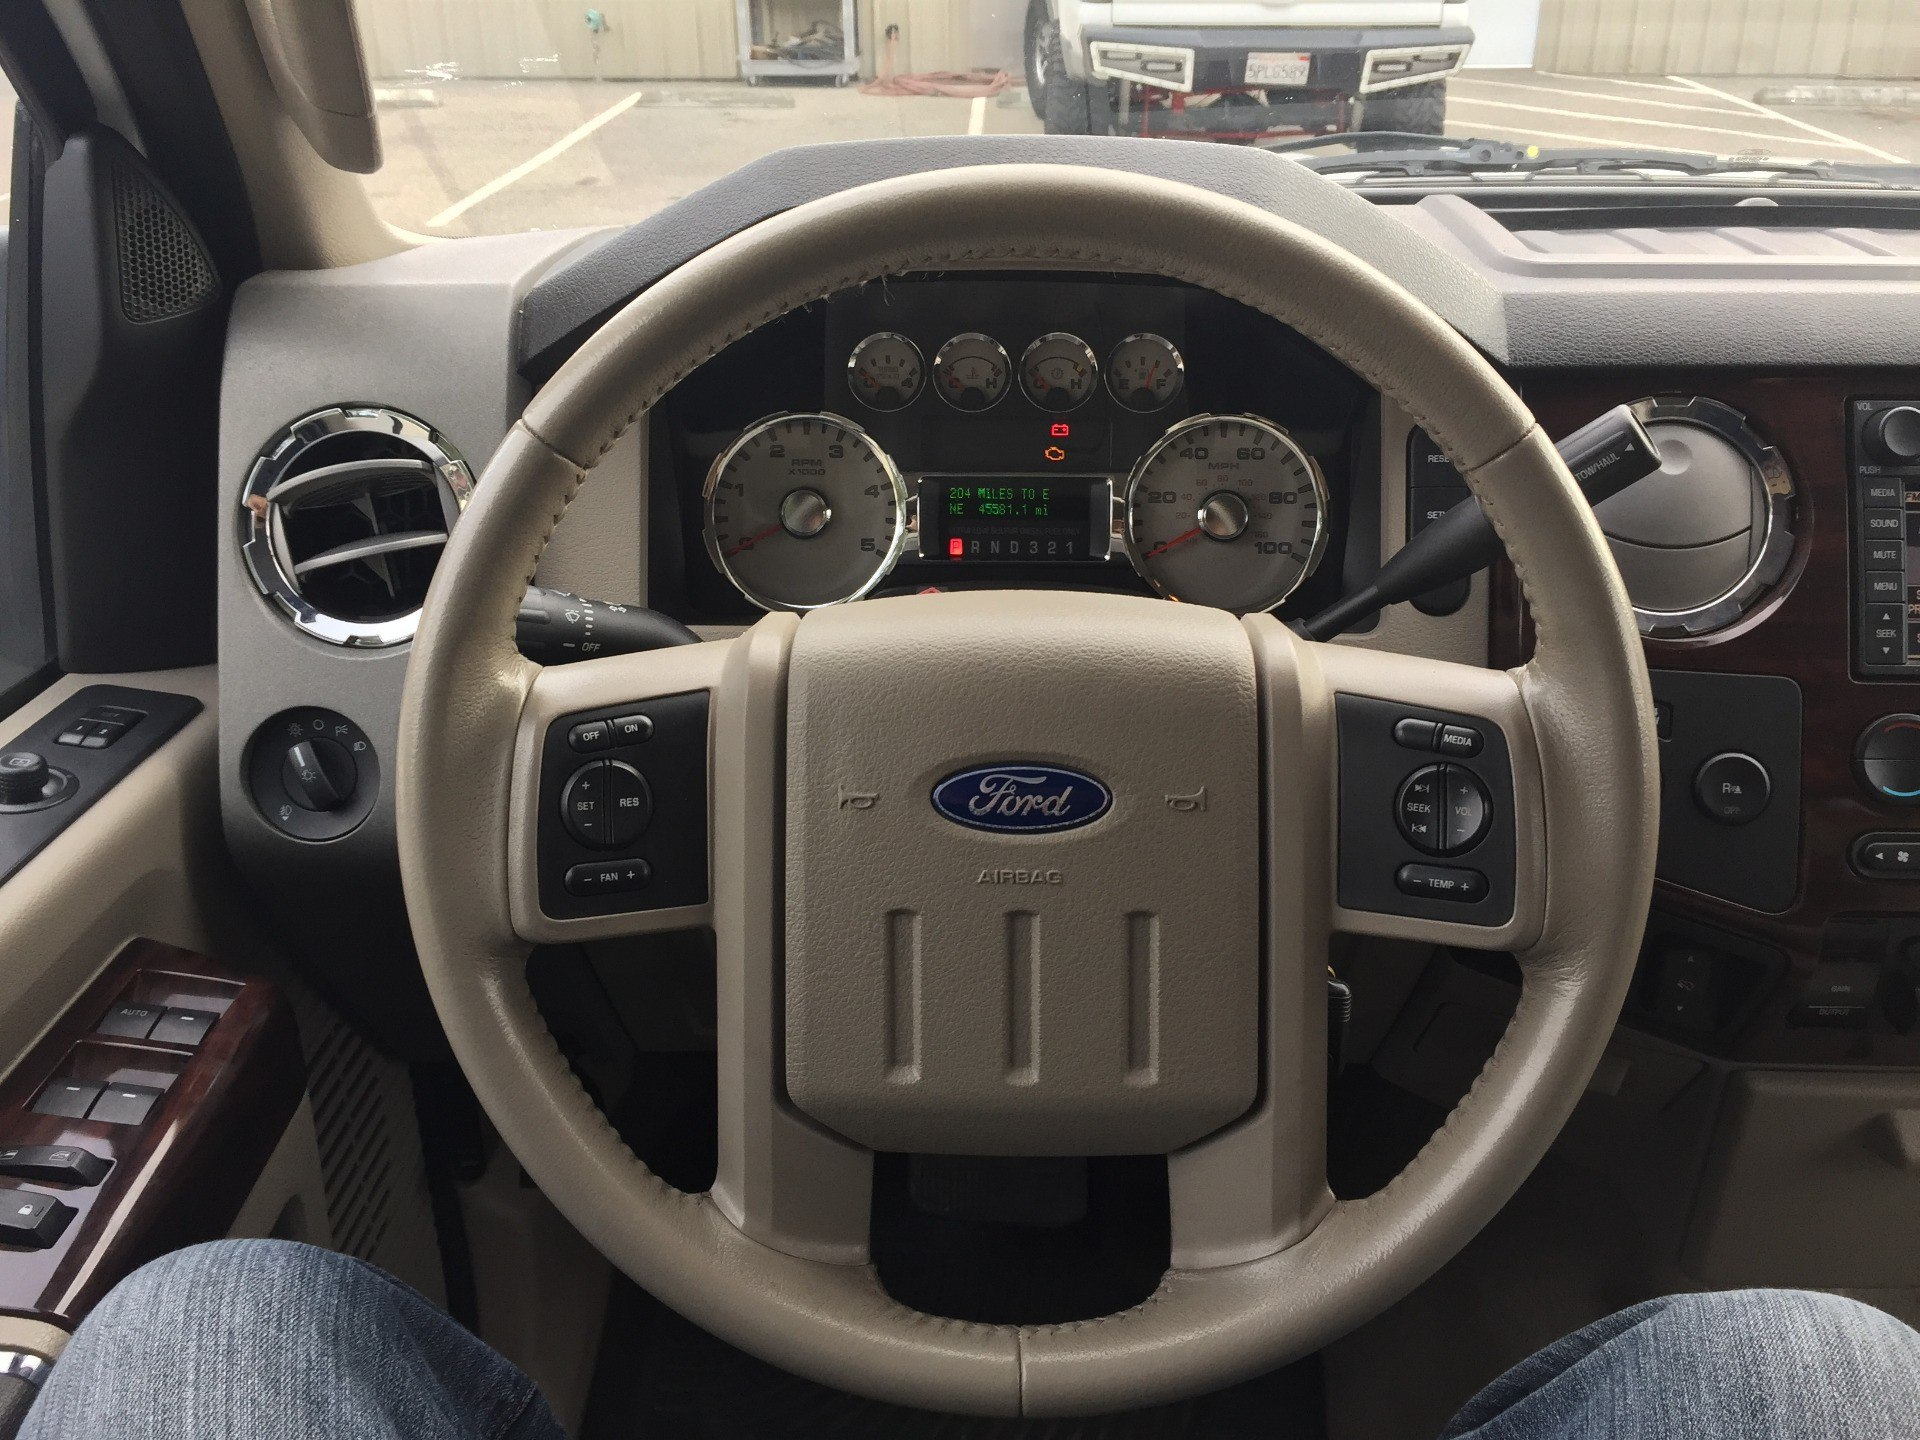 2008 Ford F450 Lariat Super Duty Crew Cab in Madera, California